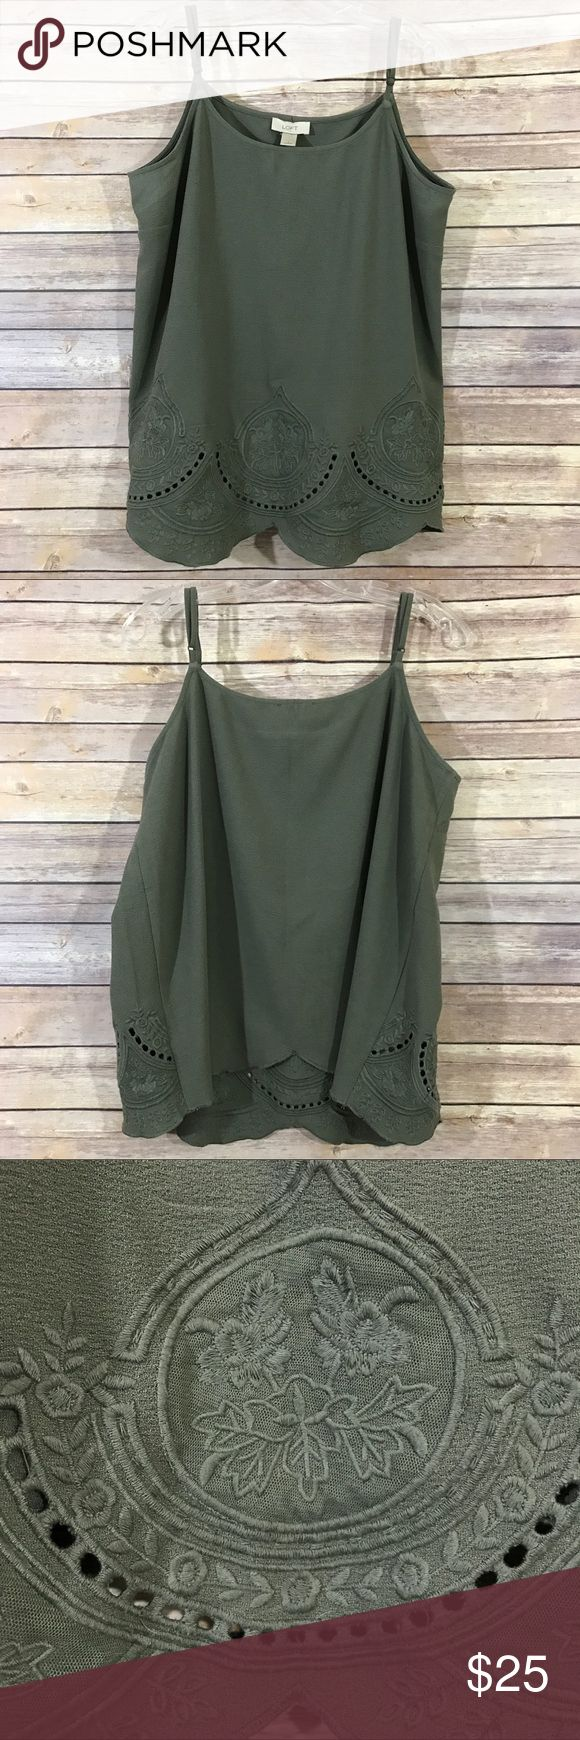 """Loft embroidered detail olive green cami tank, L This gorgeous Loft olive green cami tank is a perfect layering piece to wear with shorts now and later in fall under a sweater! It's a size Large and is in good preowned condition with no known flaws and light overall wear. It measures 22"""" flat across the bust and is 28"""" long. LOFT Tops Tank Tops"""